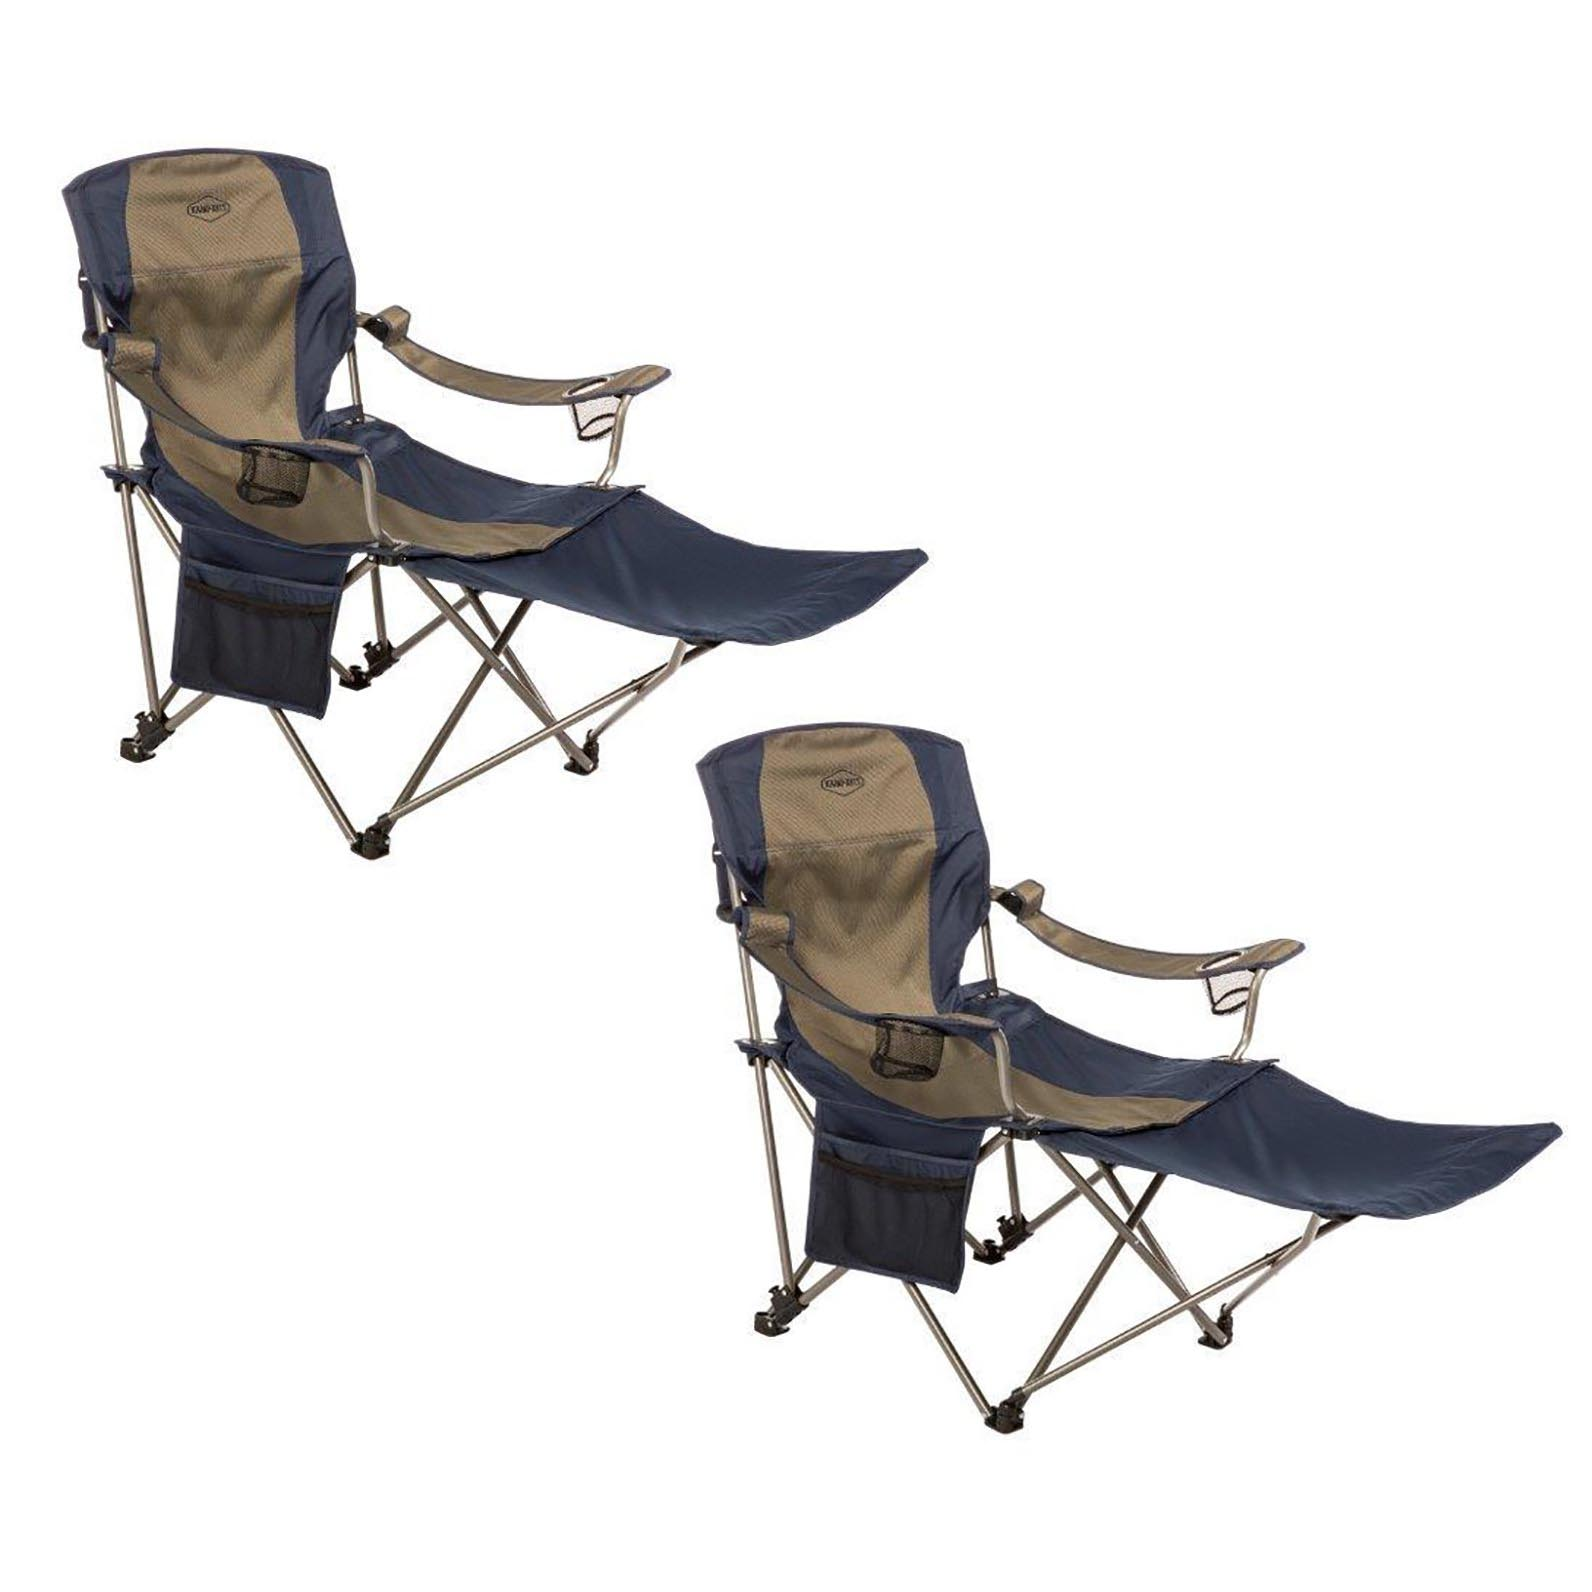 folding chair with footrest graco contempo high kamp rite outdoor tailgating camping detachable 2 pack walmart com